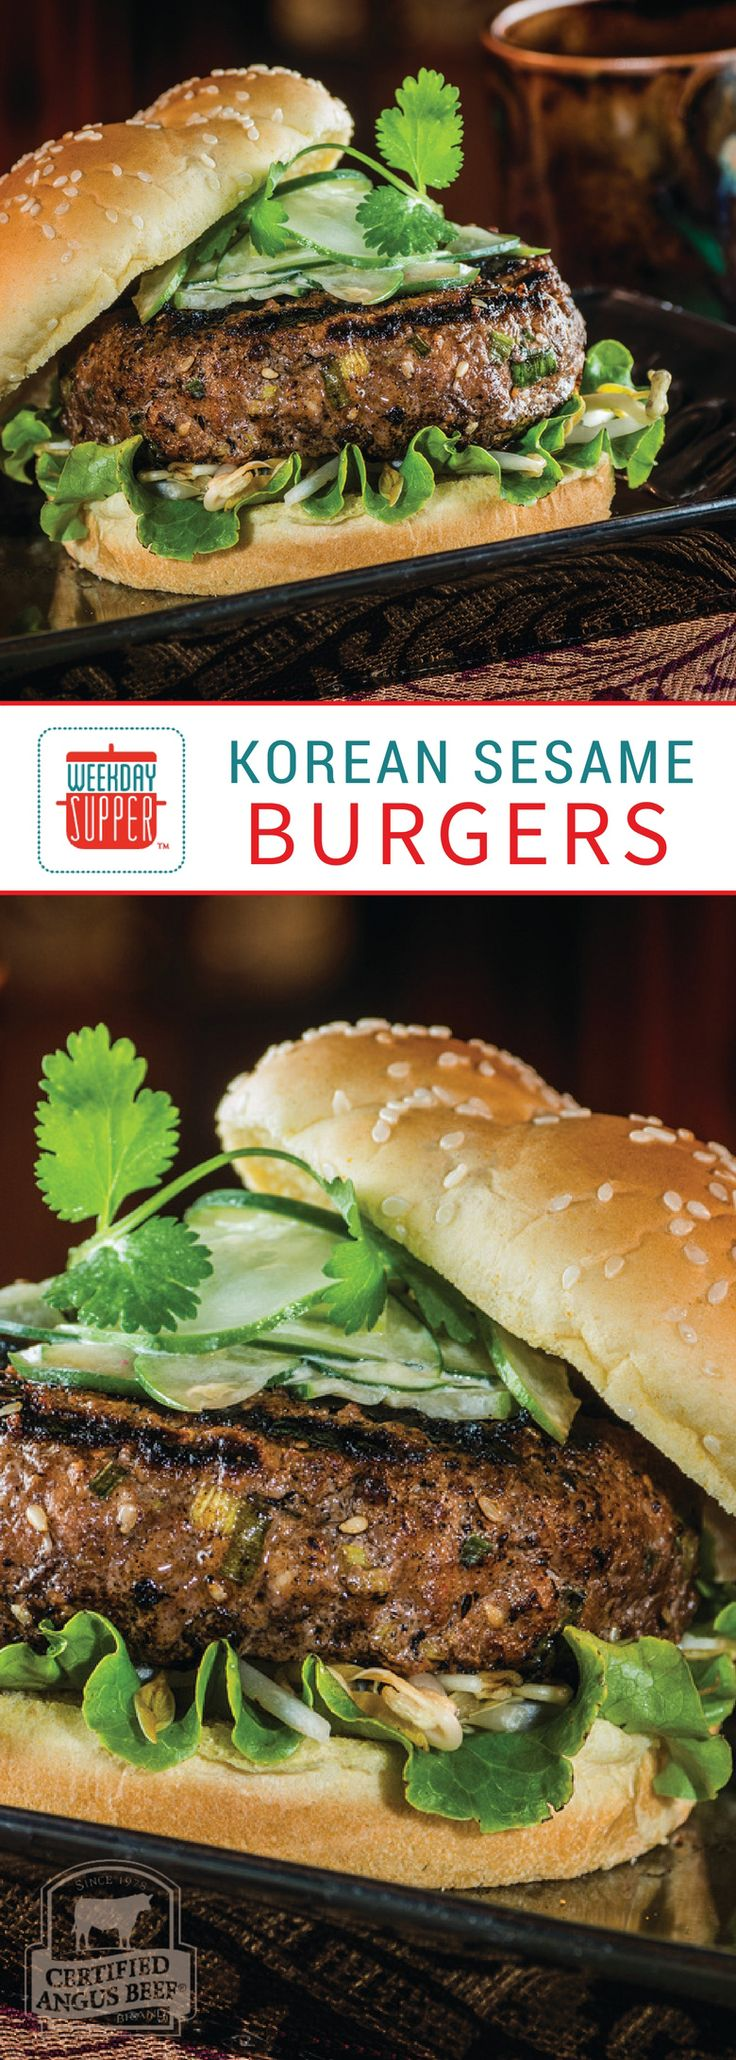 Korean sesame burgers marry Asian flavors with a good old American burger. Top with cucumber, cabbage, bean sprouts and cilantro. So fresh and delicious! #WeekdaySupper #BestBeef